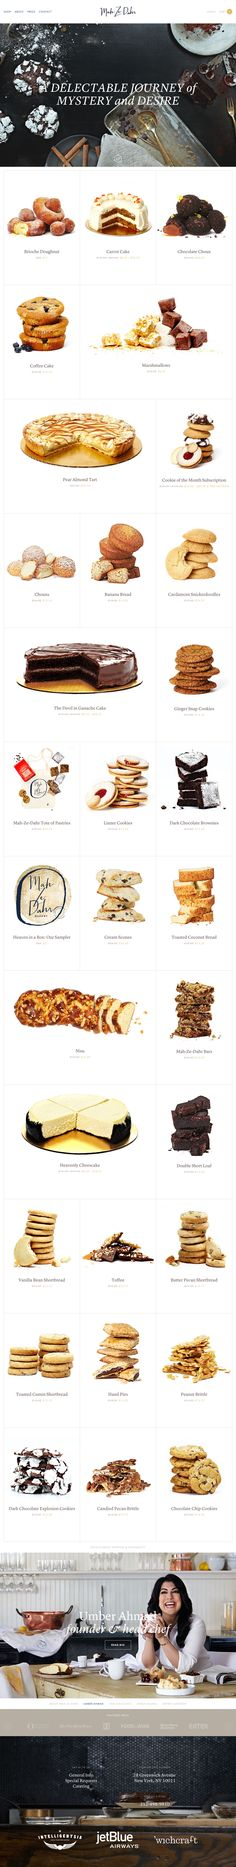 E-commerce integrated One Pager for a new bakery called 'Mah Ze Dahr'. The responsive adaption spans a big screen well and works great on mobile. The One Page website is filled with gorgeous images of the food - each with additional info in an overlay modal including commerce functionality like add-to-cart. Great to have another E-commerce One Page website added to the collection.